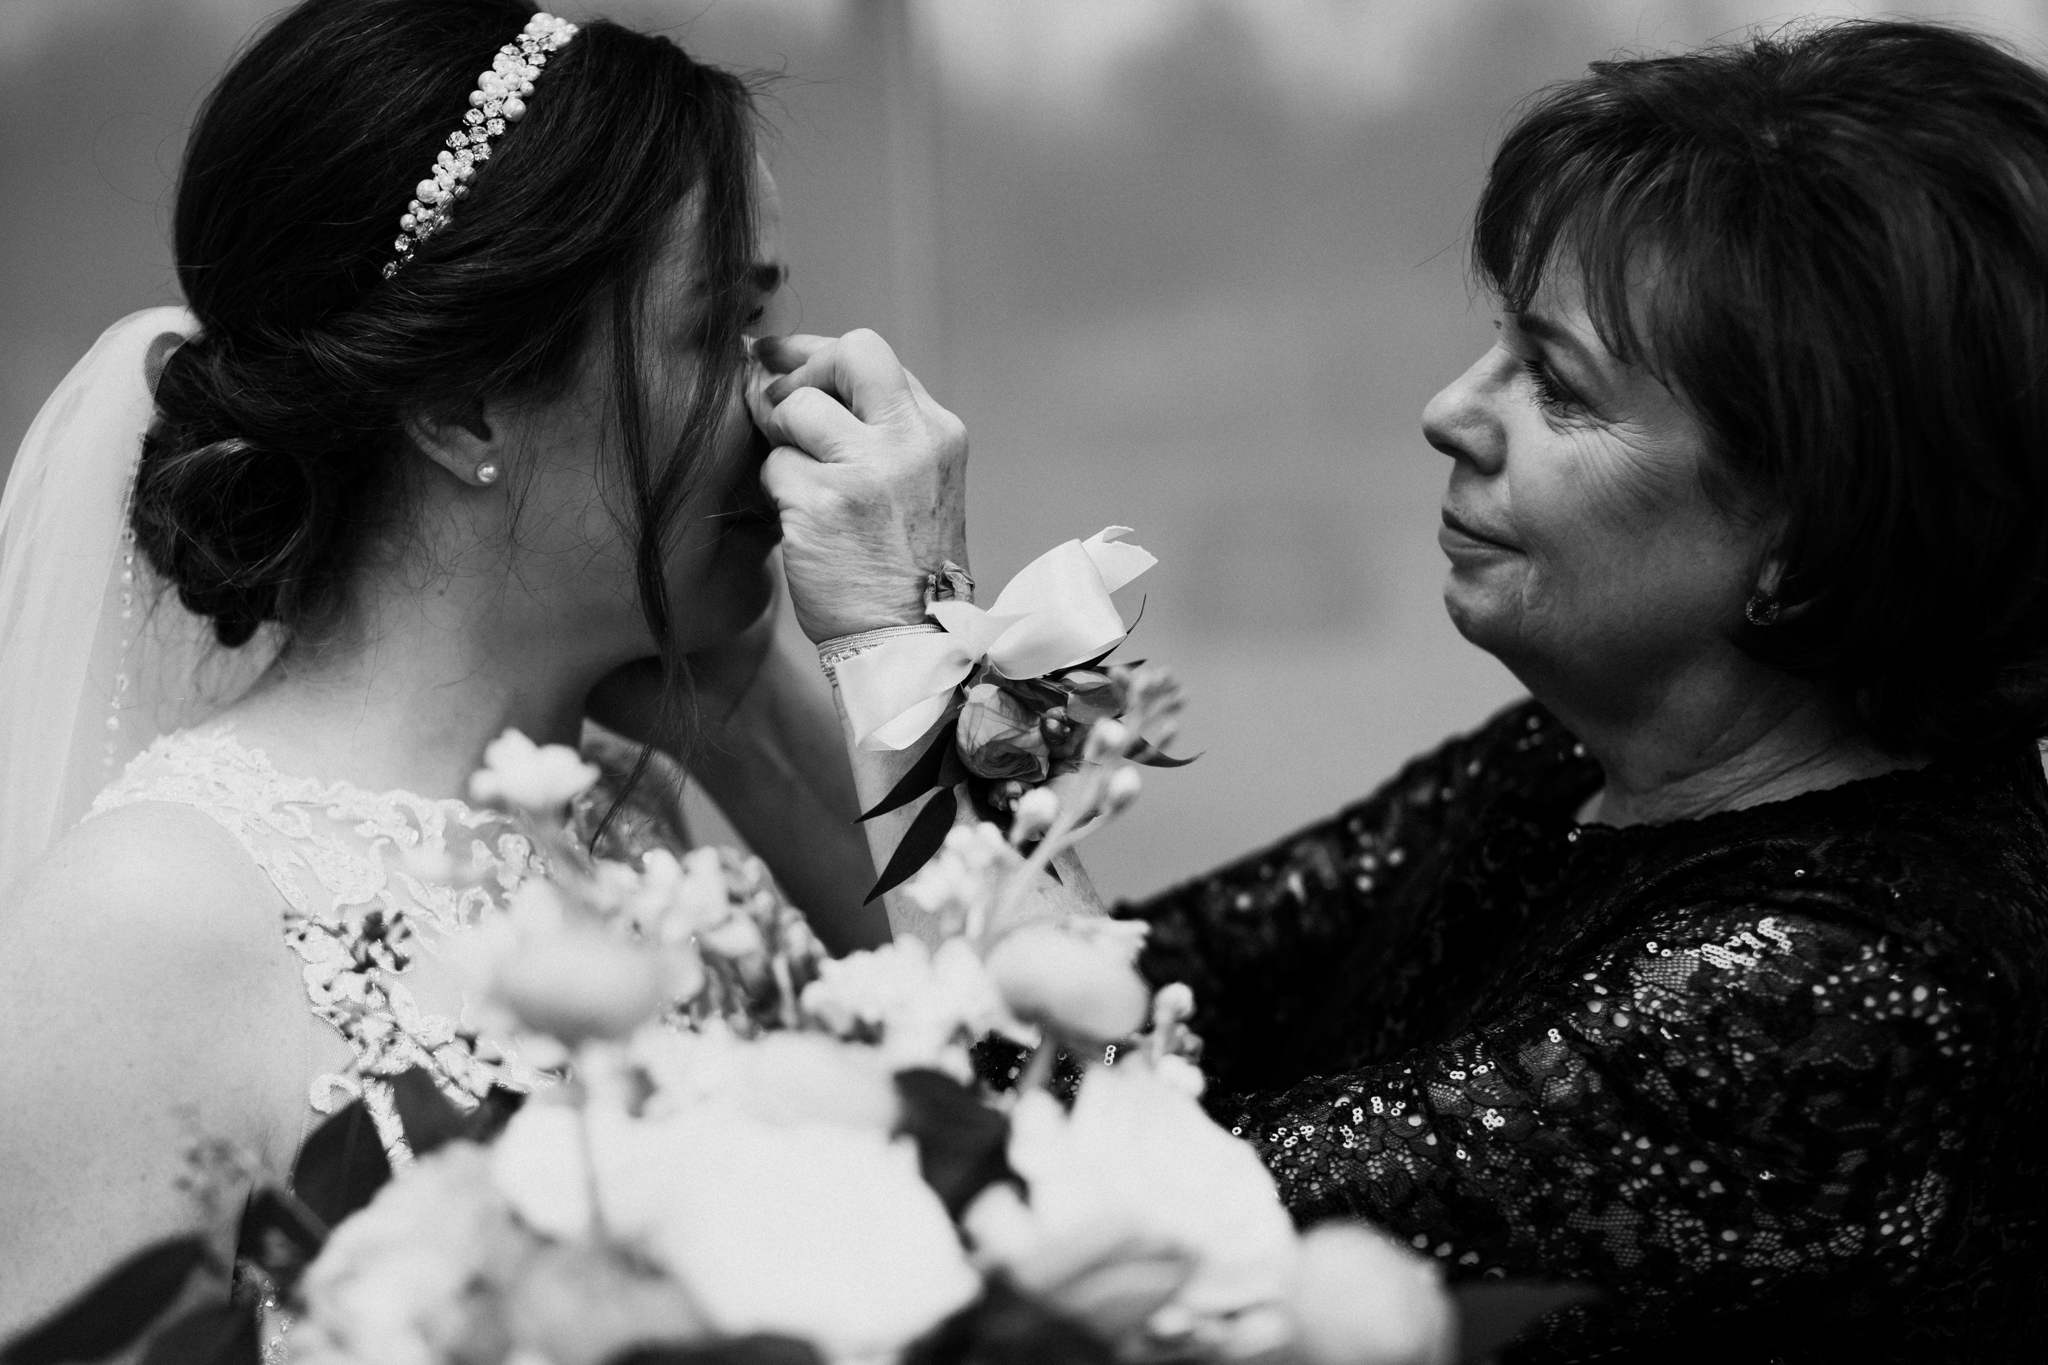 memphis-wedding-photographers-the-warmth-around-you-cassie-cook-photography (1 of 8).jpg